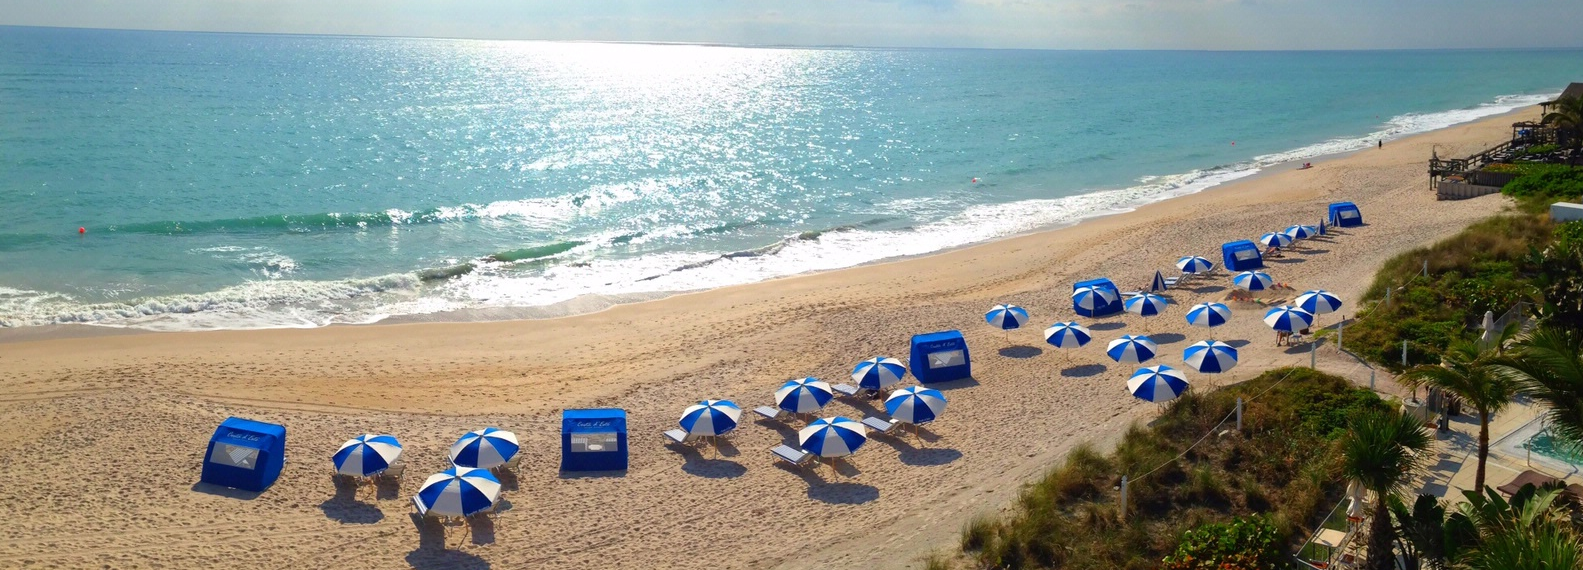 Costa d'Este Beach Resort Vero Beach